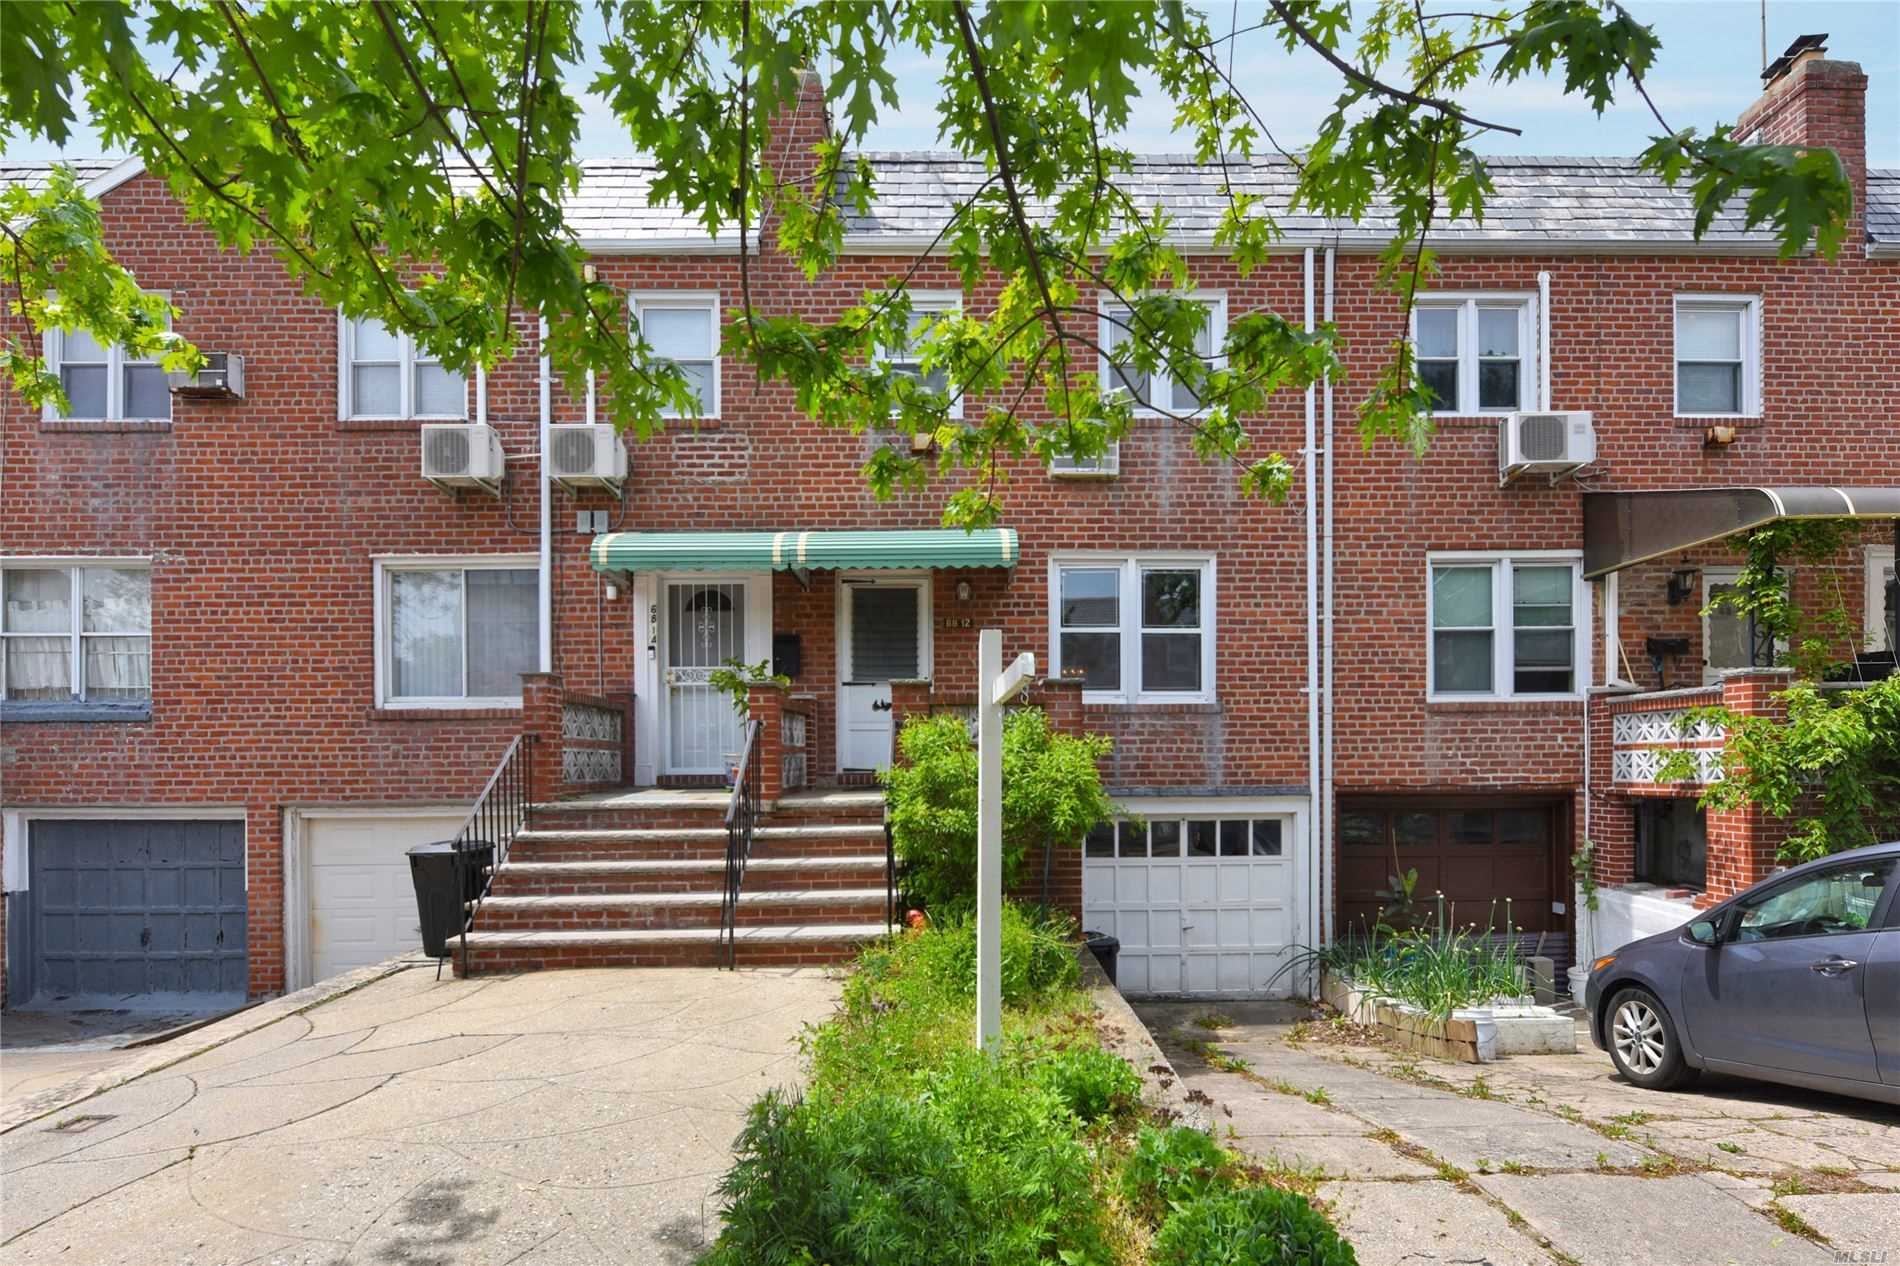 Property for sale at 68-12 174 Street, Fresh Meadows NY 11365, Fresh Meadows,  New York 11365